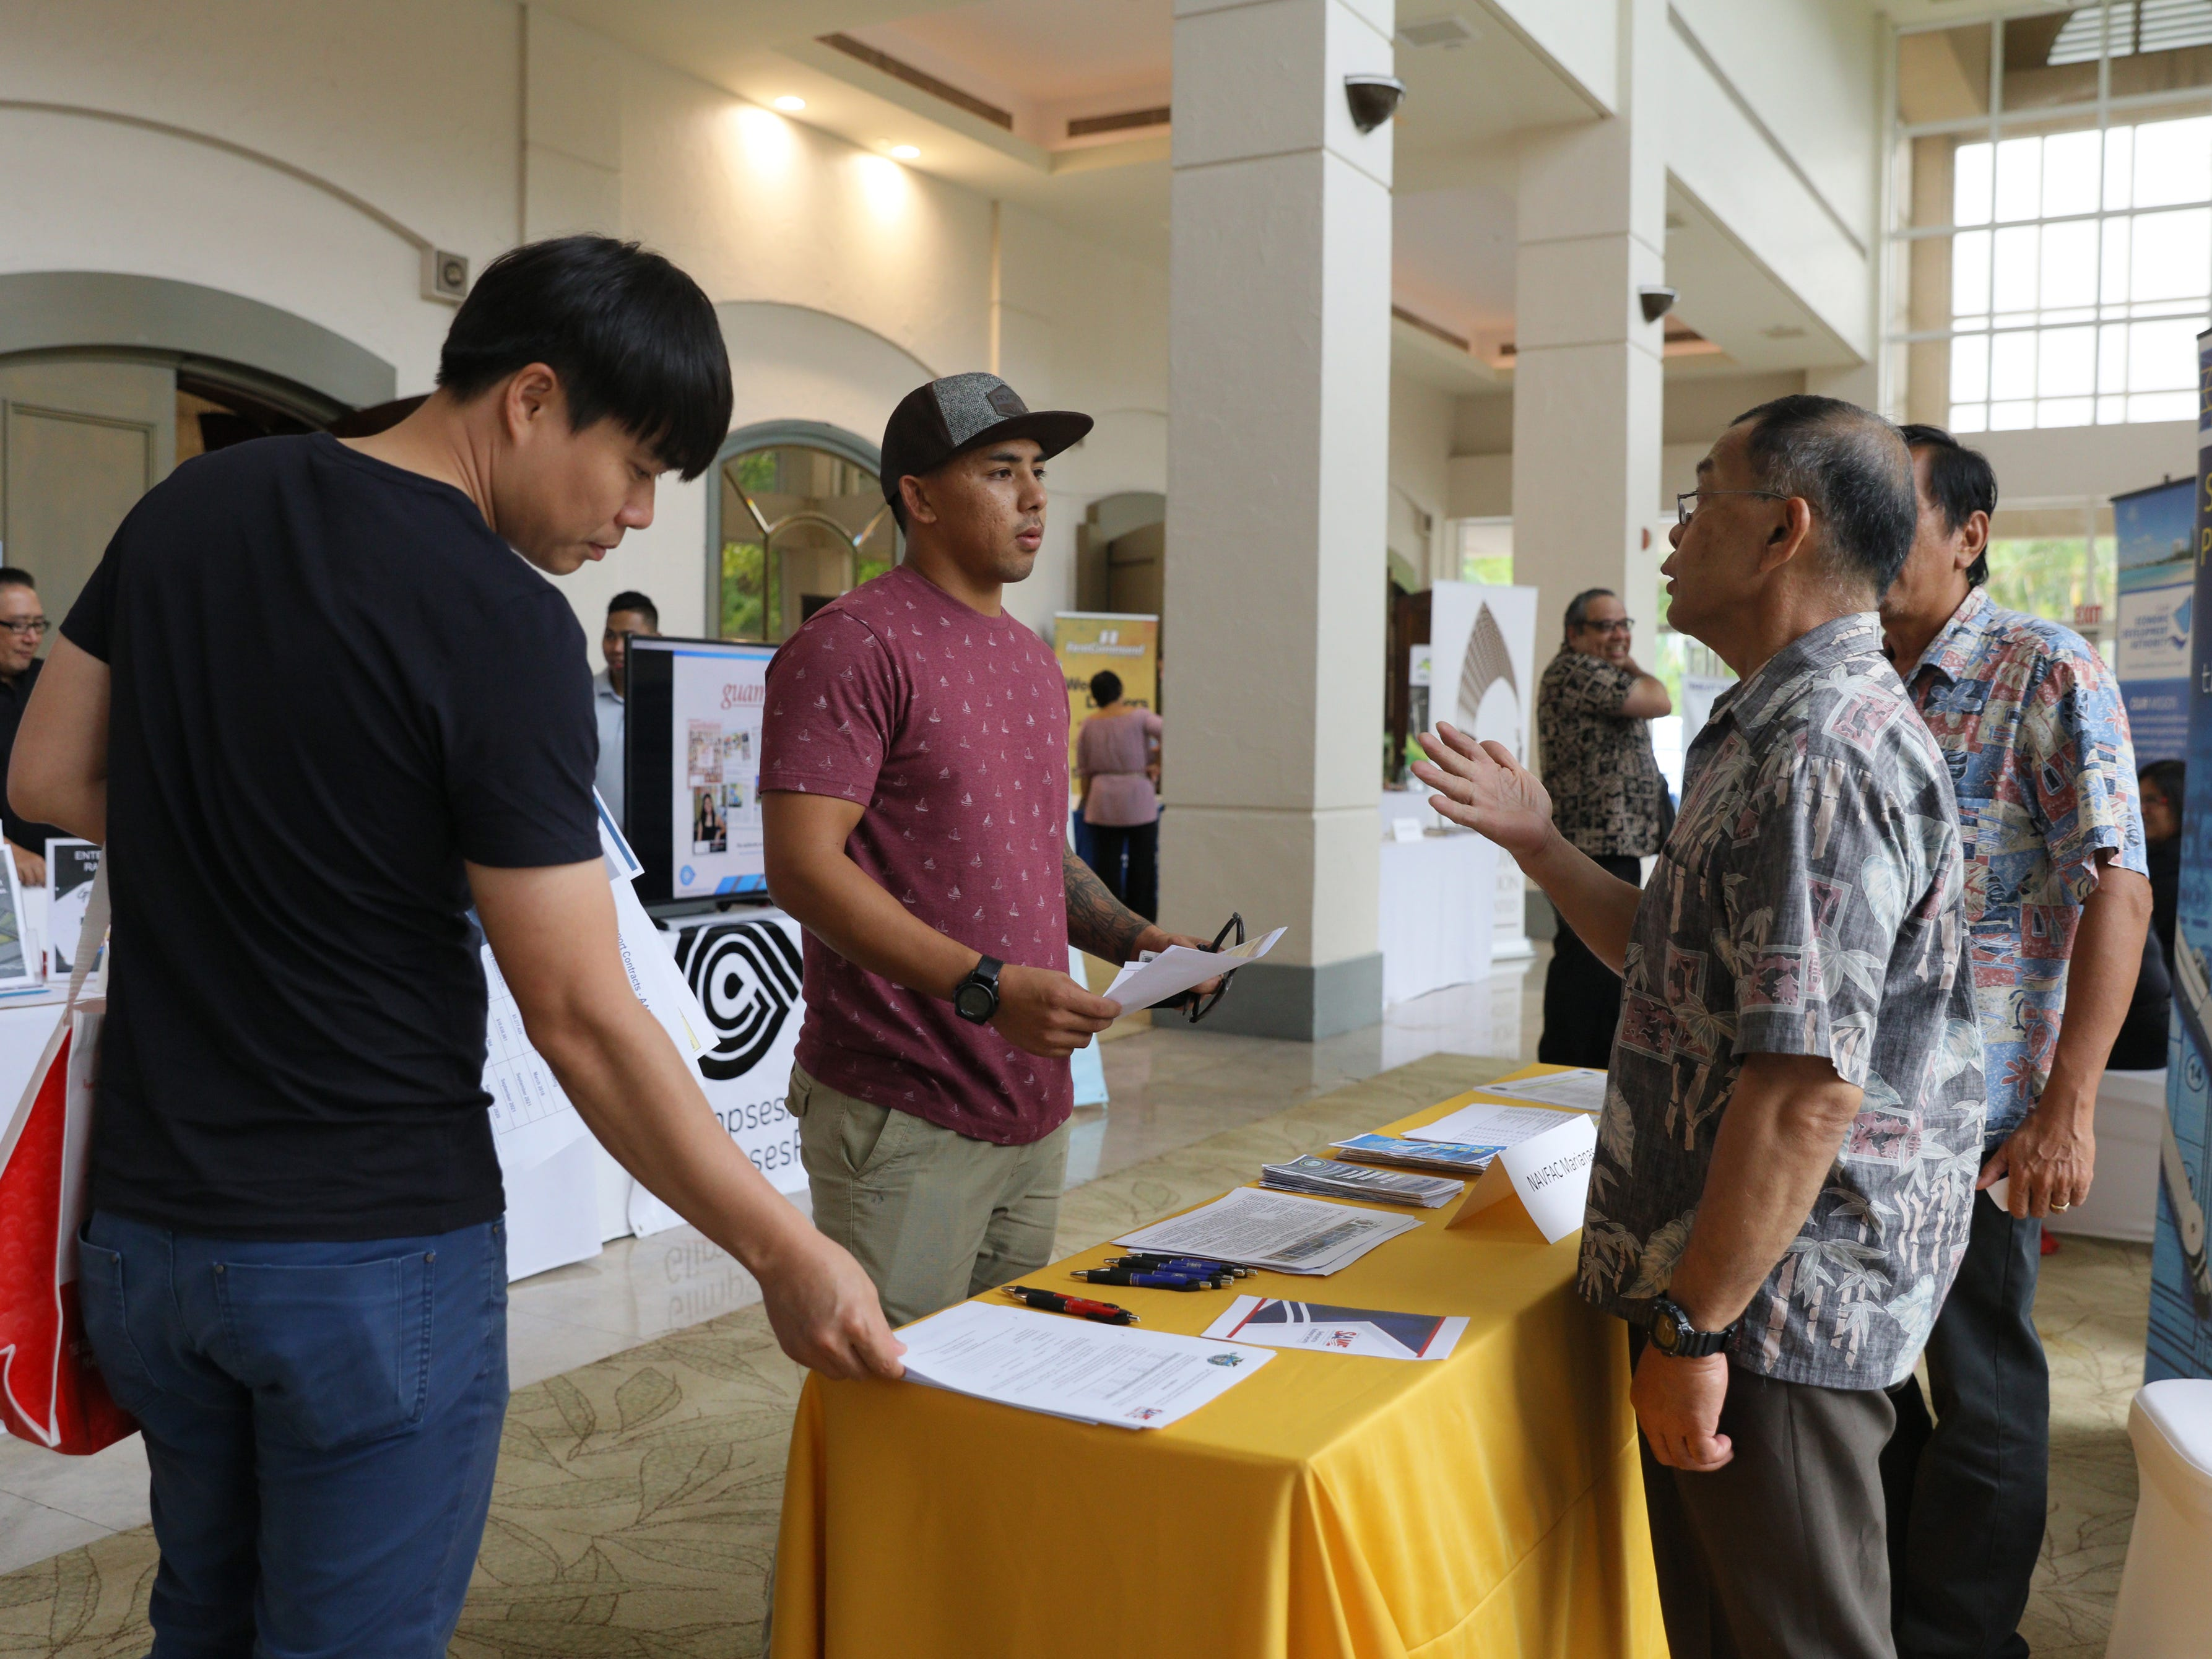 Victor Taitano, second from left, inquires about registration with NAVFAC  representatives during the Small Business Expo and Outreach.